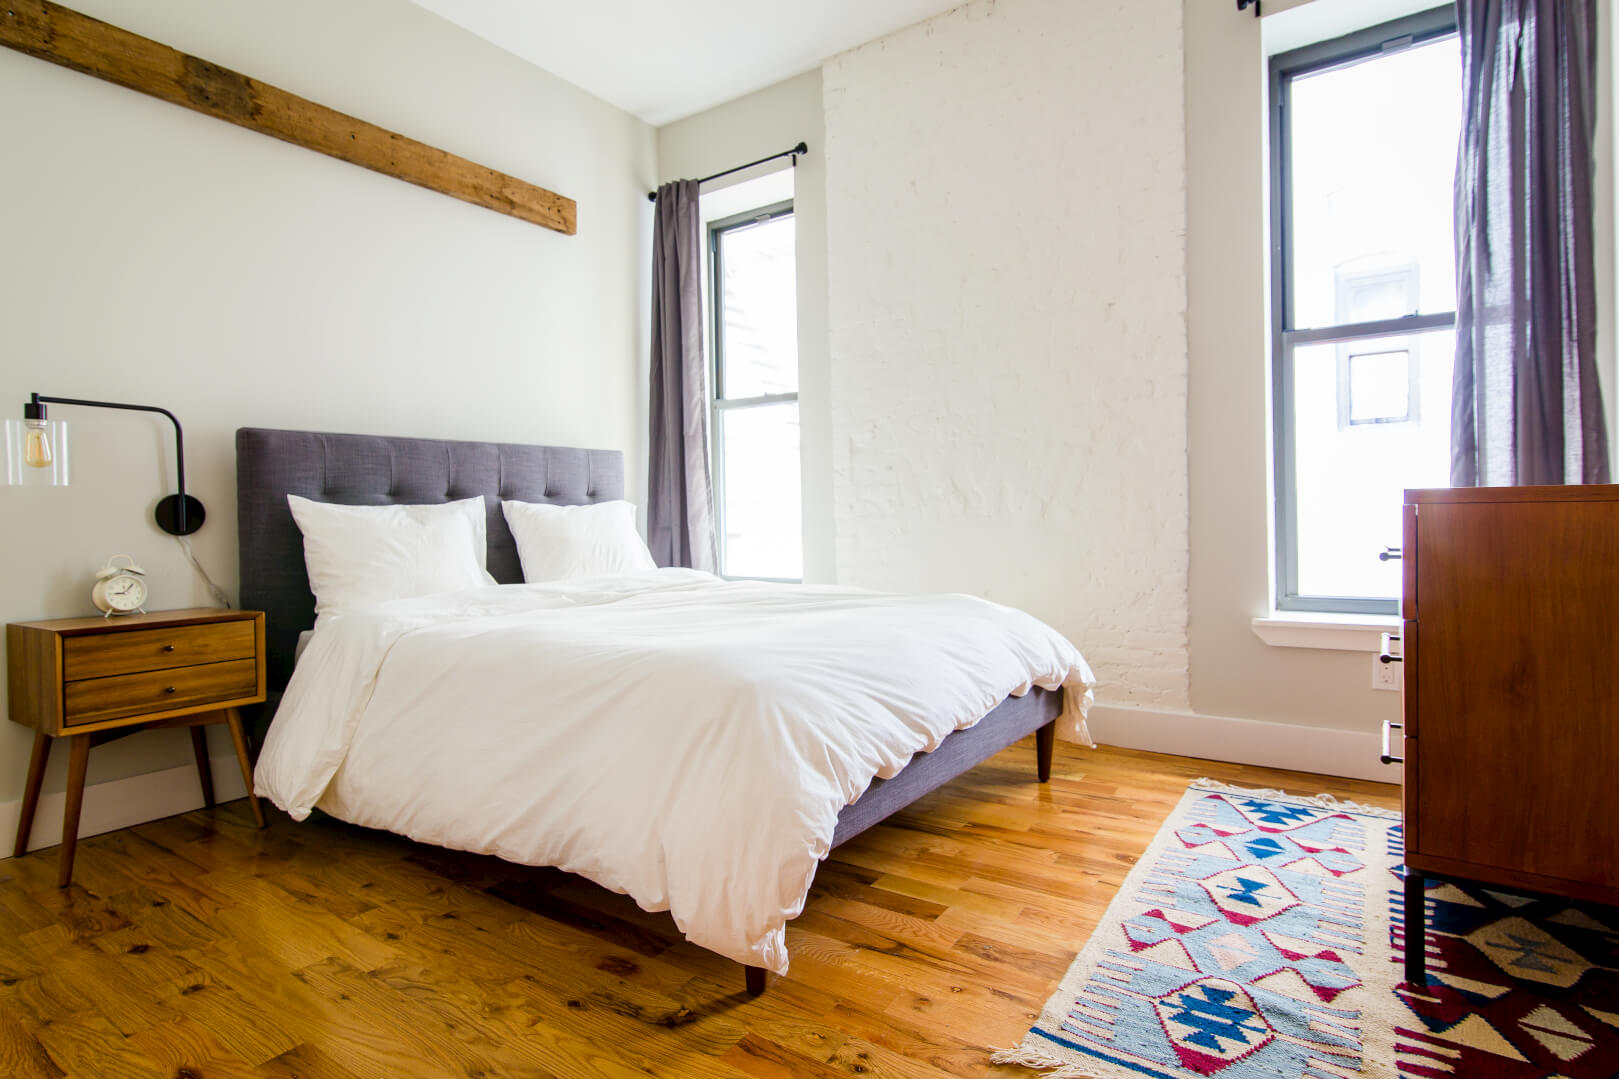 A private fully furnished bedroom at Common Pacific in Crown Heights, Brooklyn.